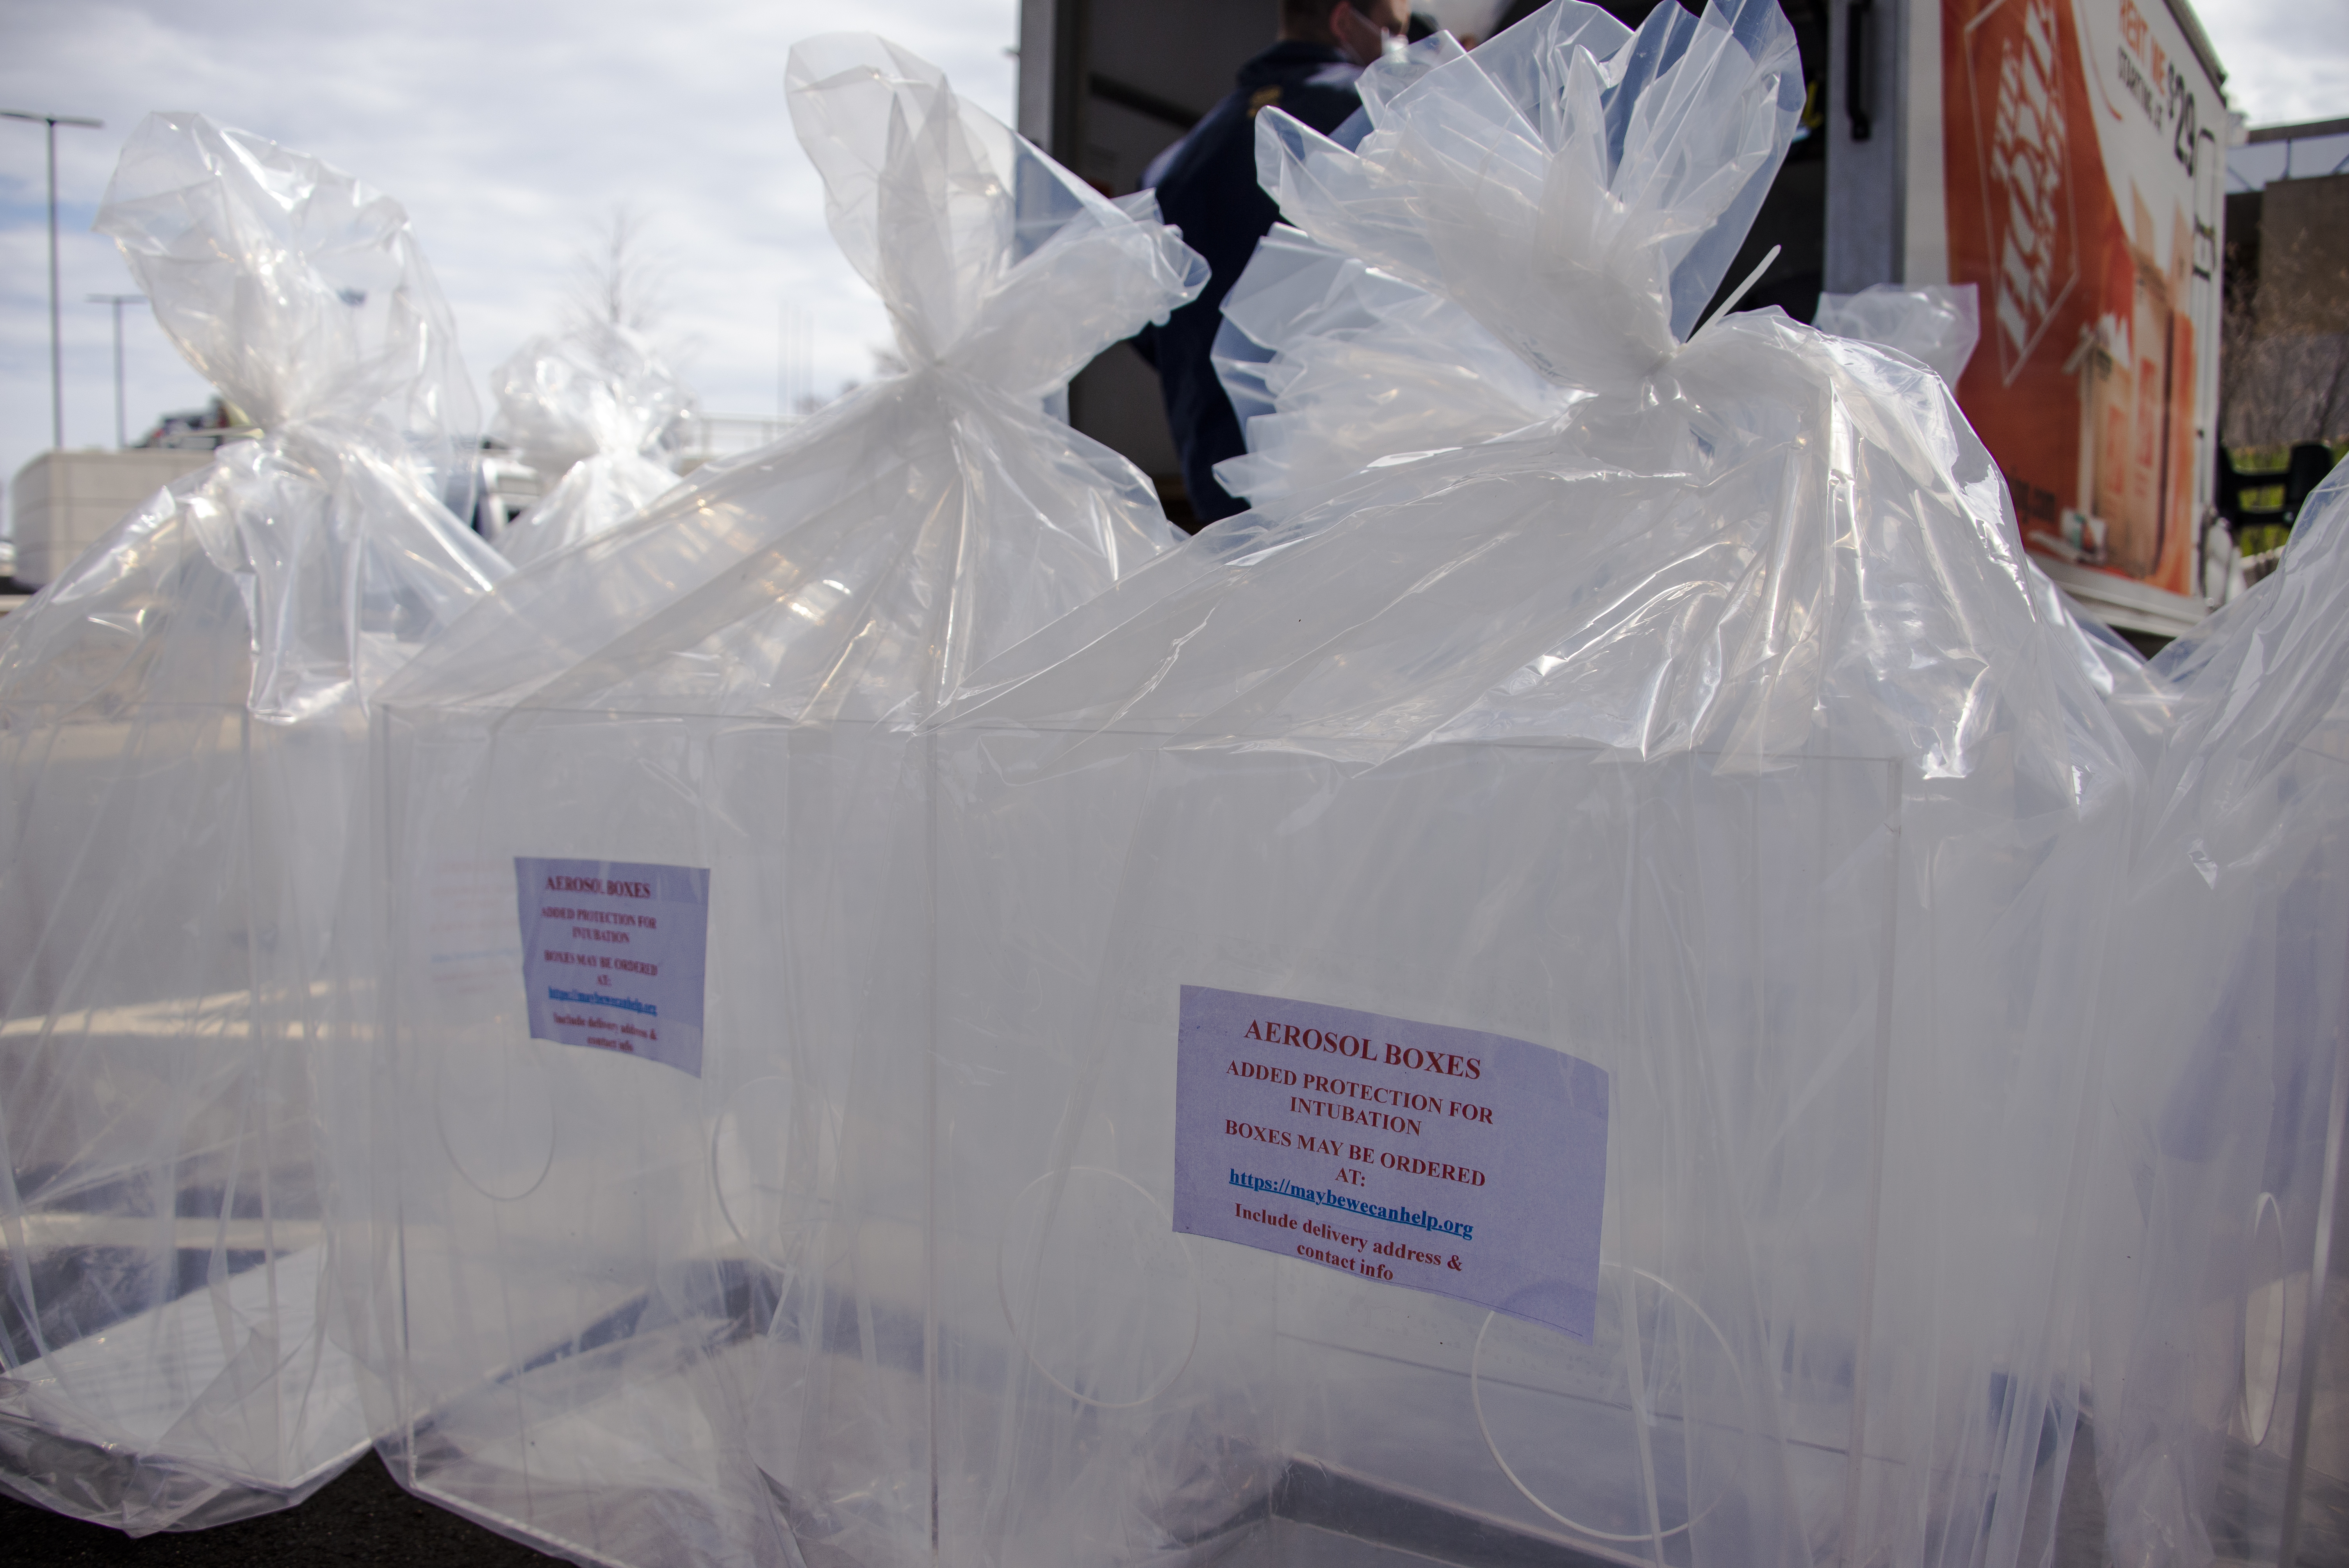 Intubation boxes manufactured and donated by KVC Builders of Waltham, Massachusetts to UConn Health and other area hospitals